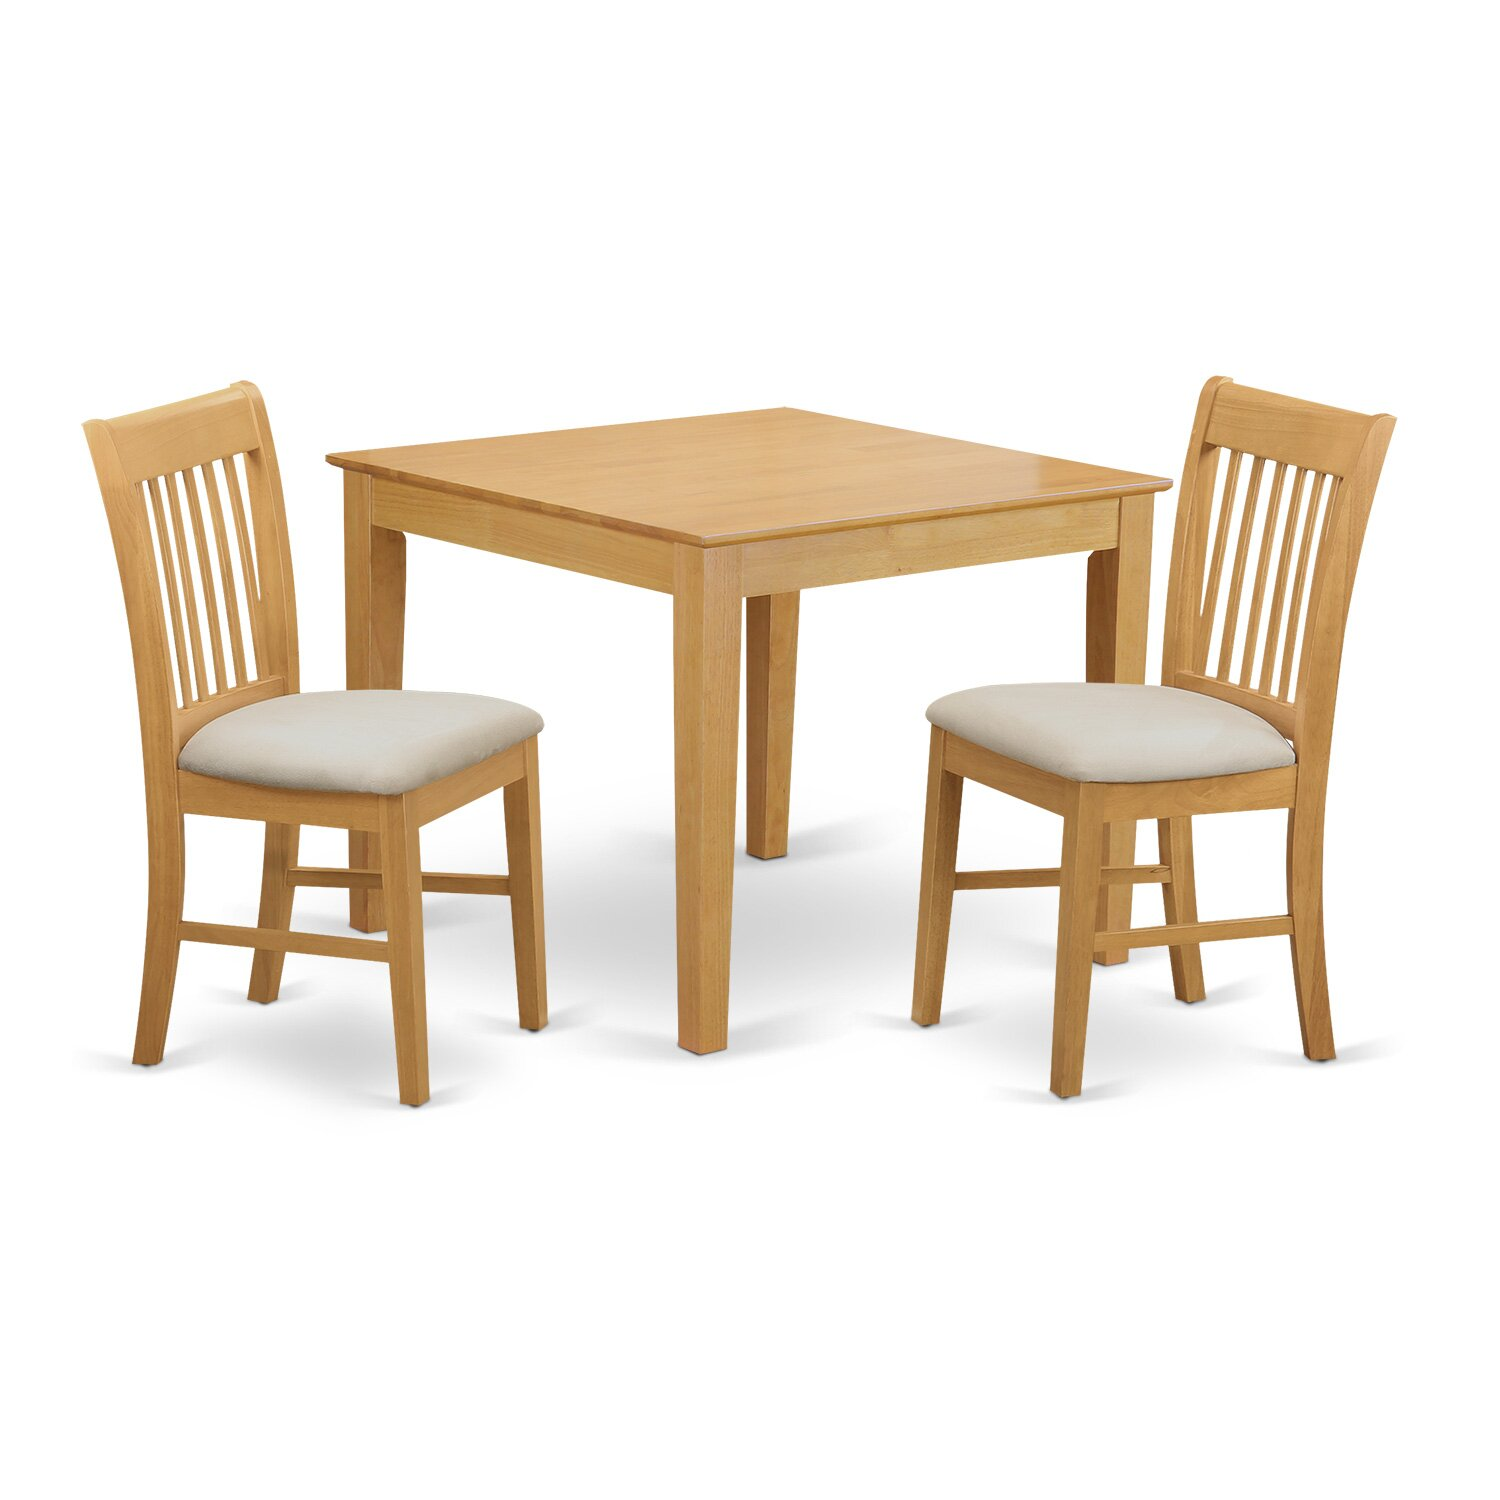 East west oxford 3 piece dining set reviews wayfair for Dining room table 2